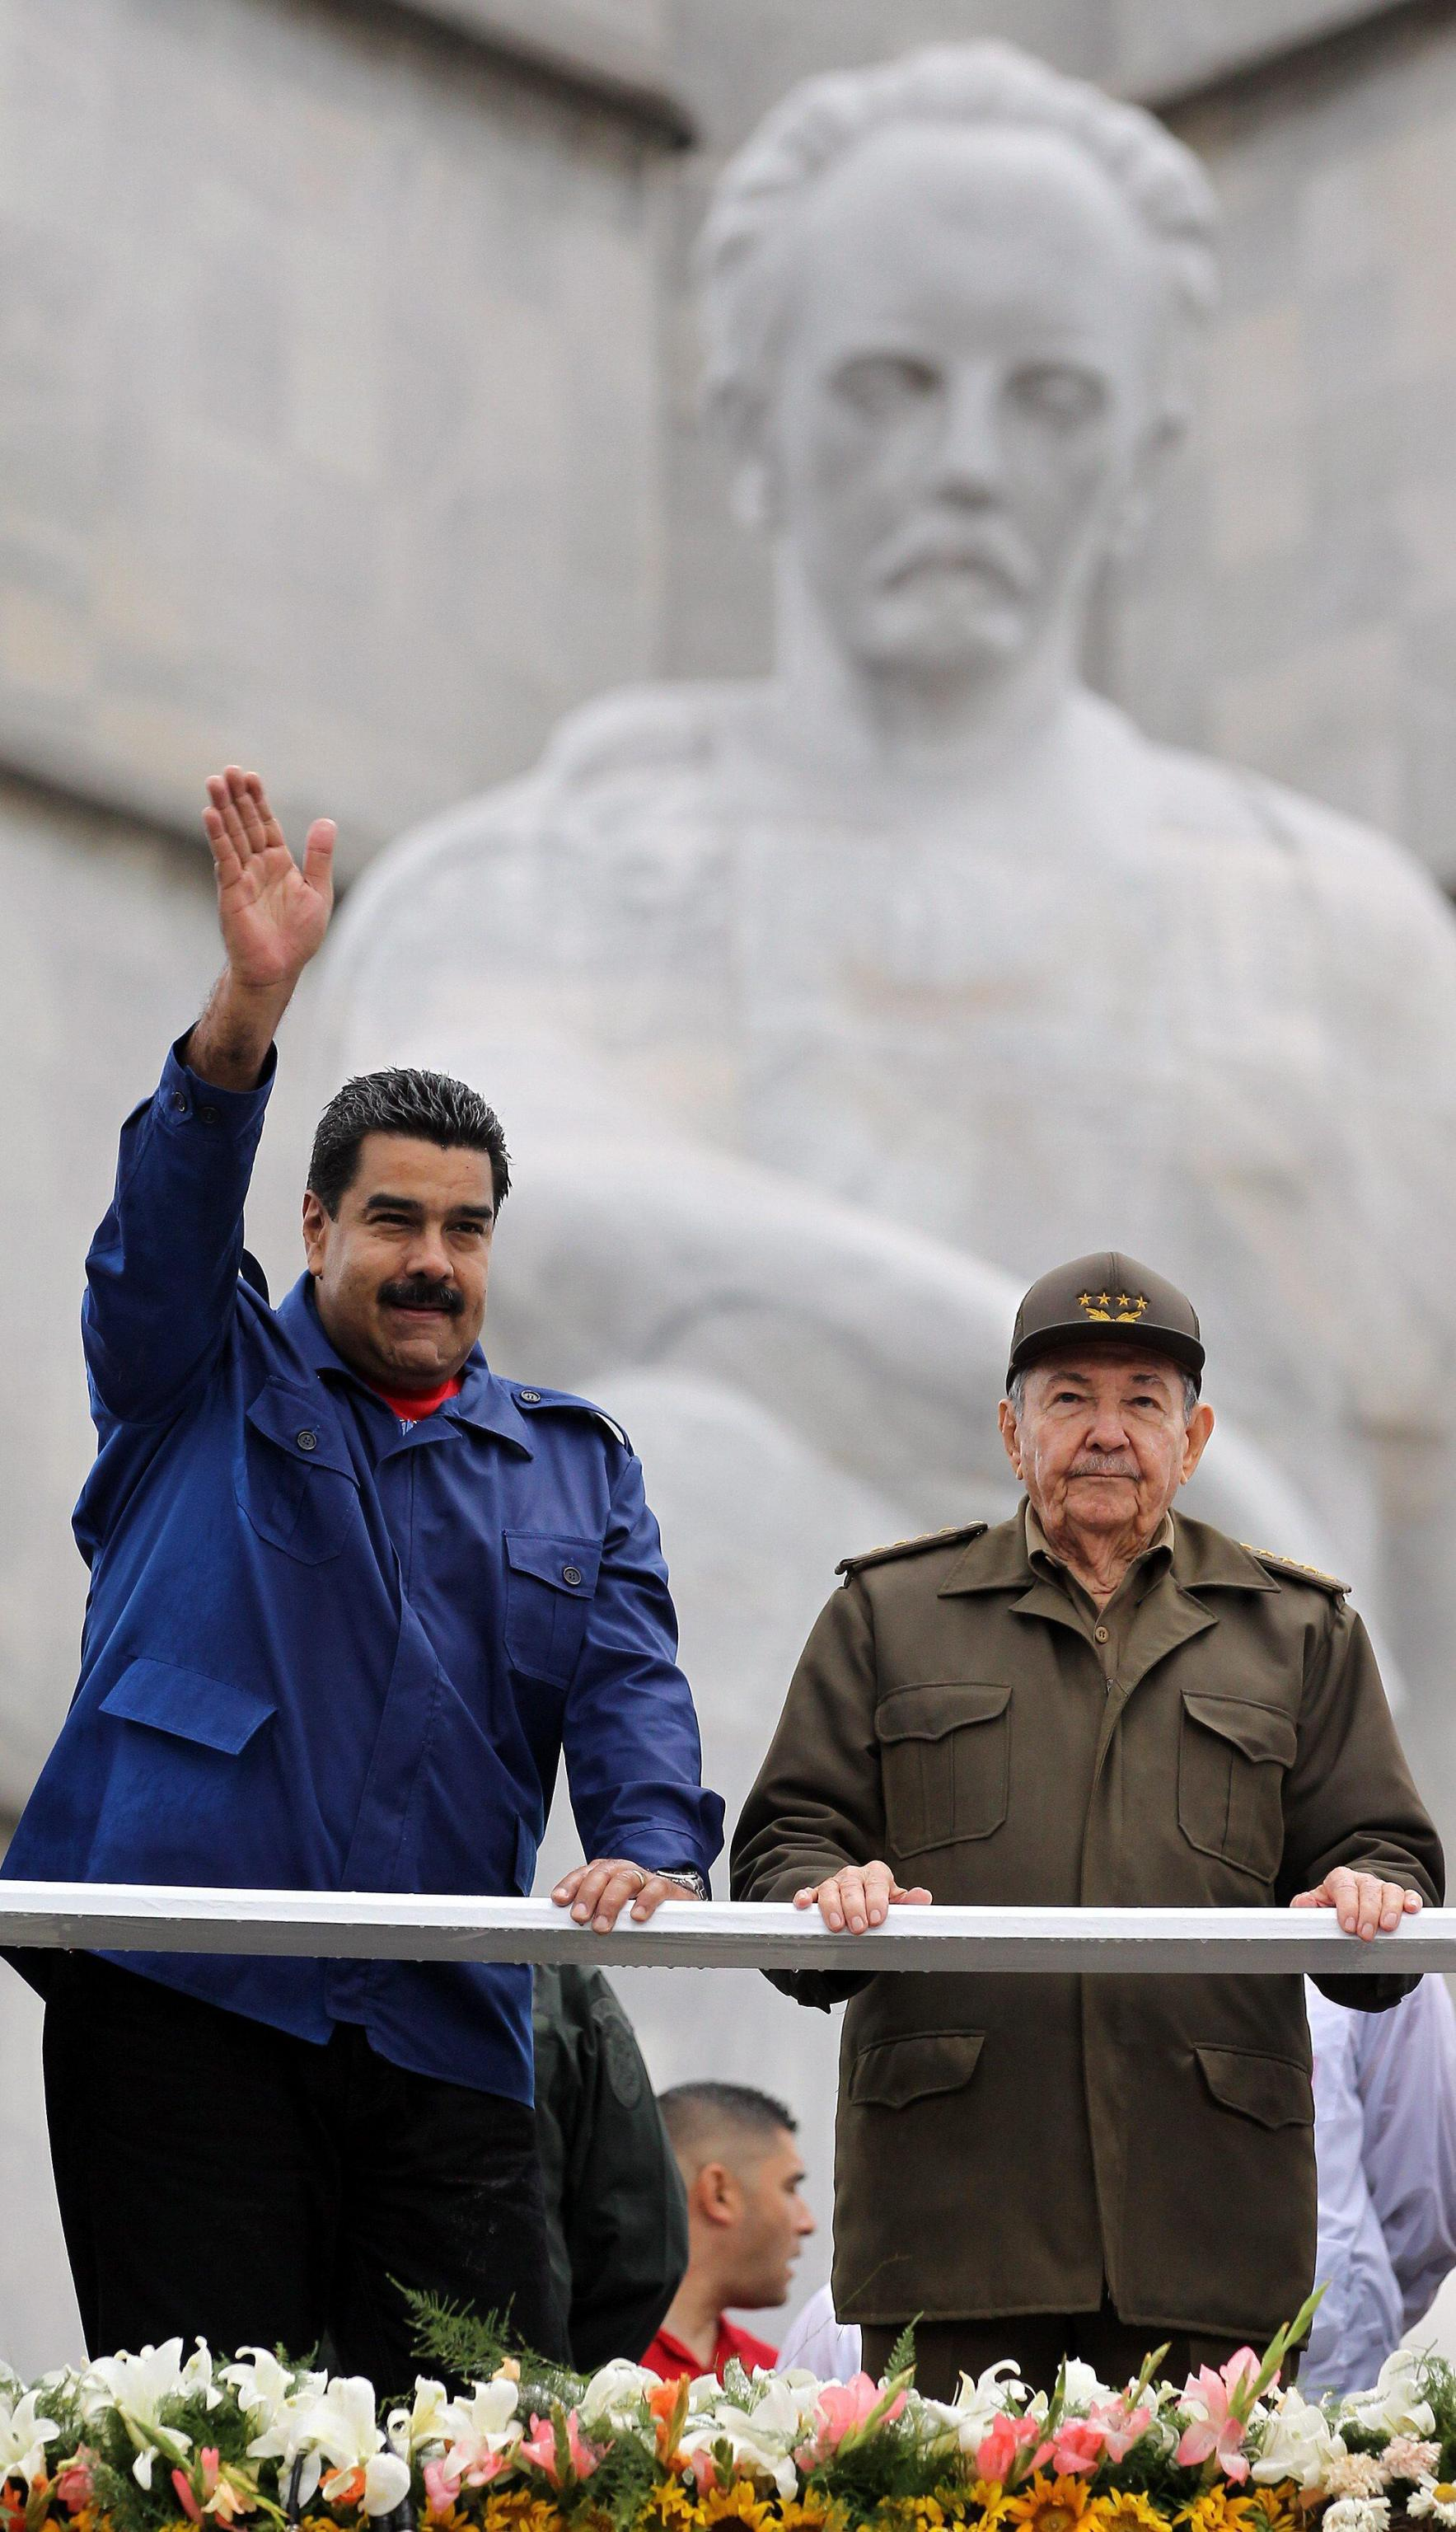 Cuban President Raul Castro (R) and his Venezuelan counterpart Nicolas Maduro (L) attend the May Day parade at the Revolution Sauqre in Havana